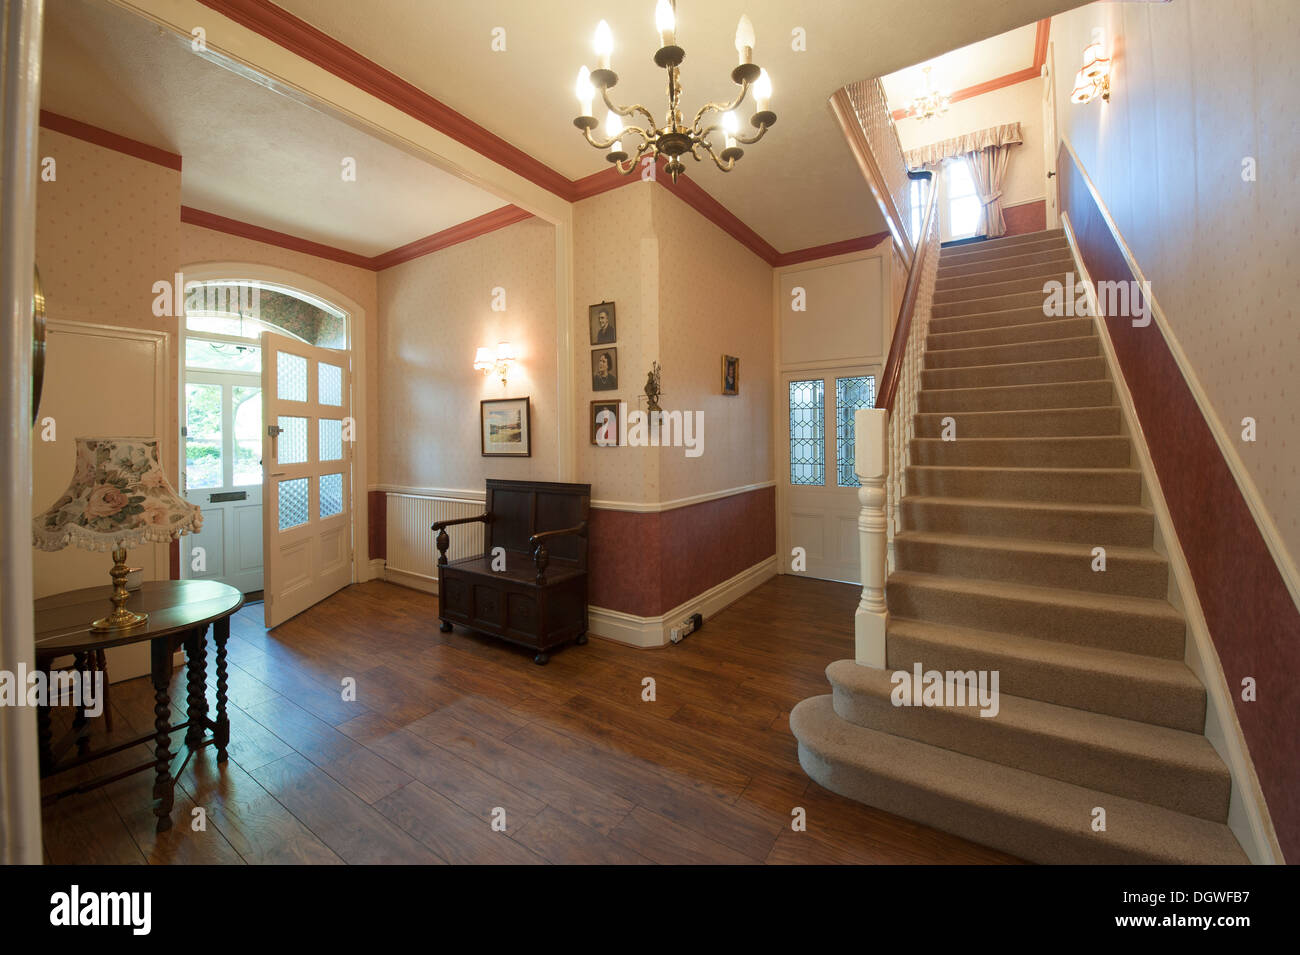 Grand Entrance Hall And Stairs English Country House   Stock Image